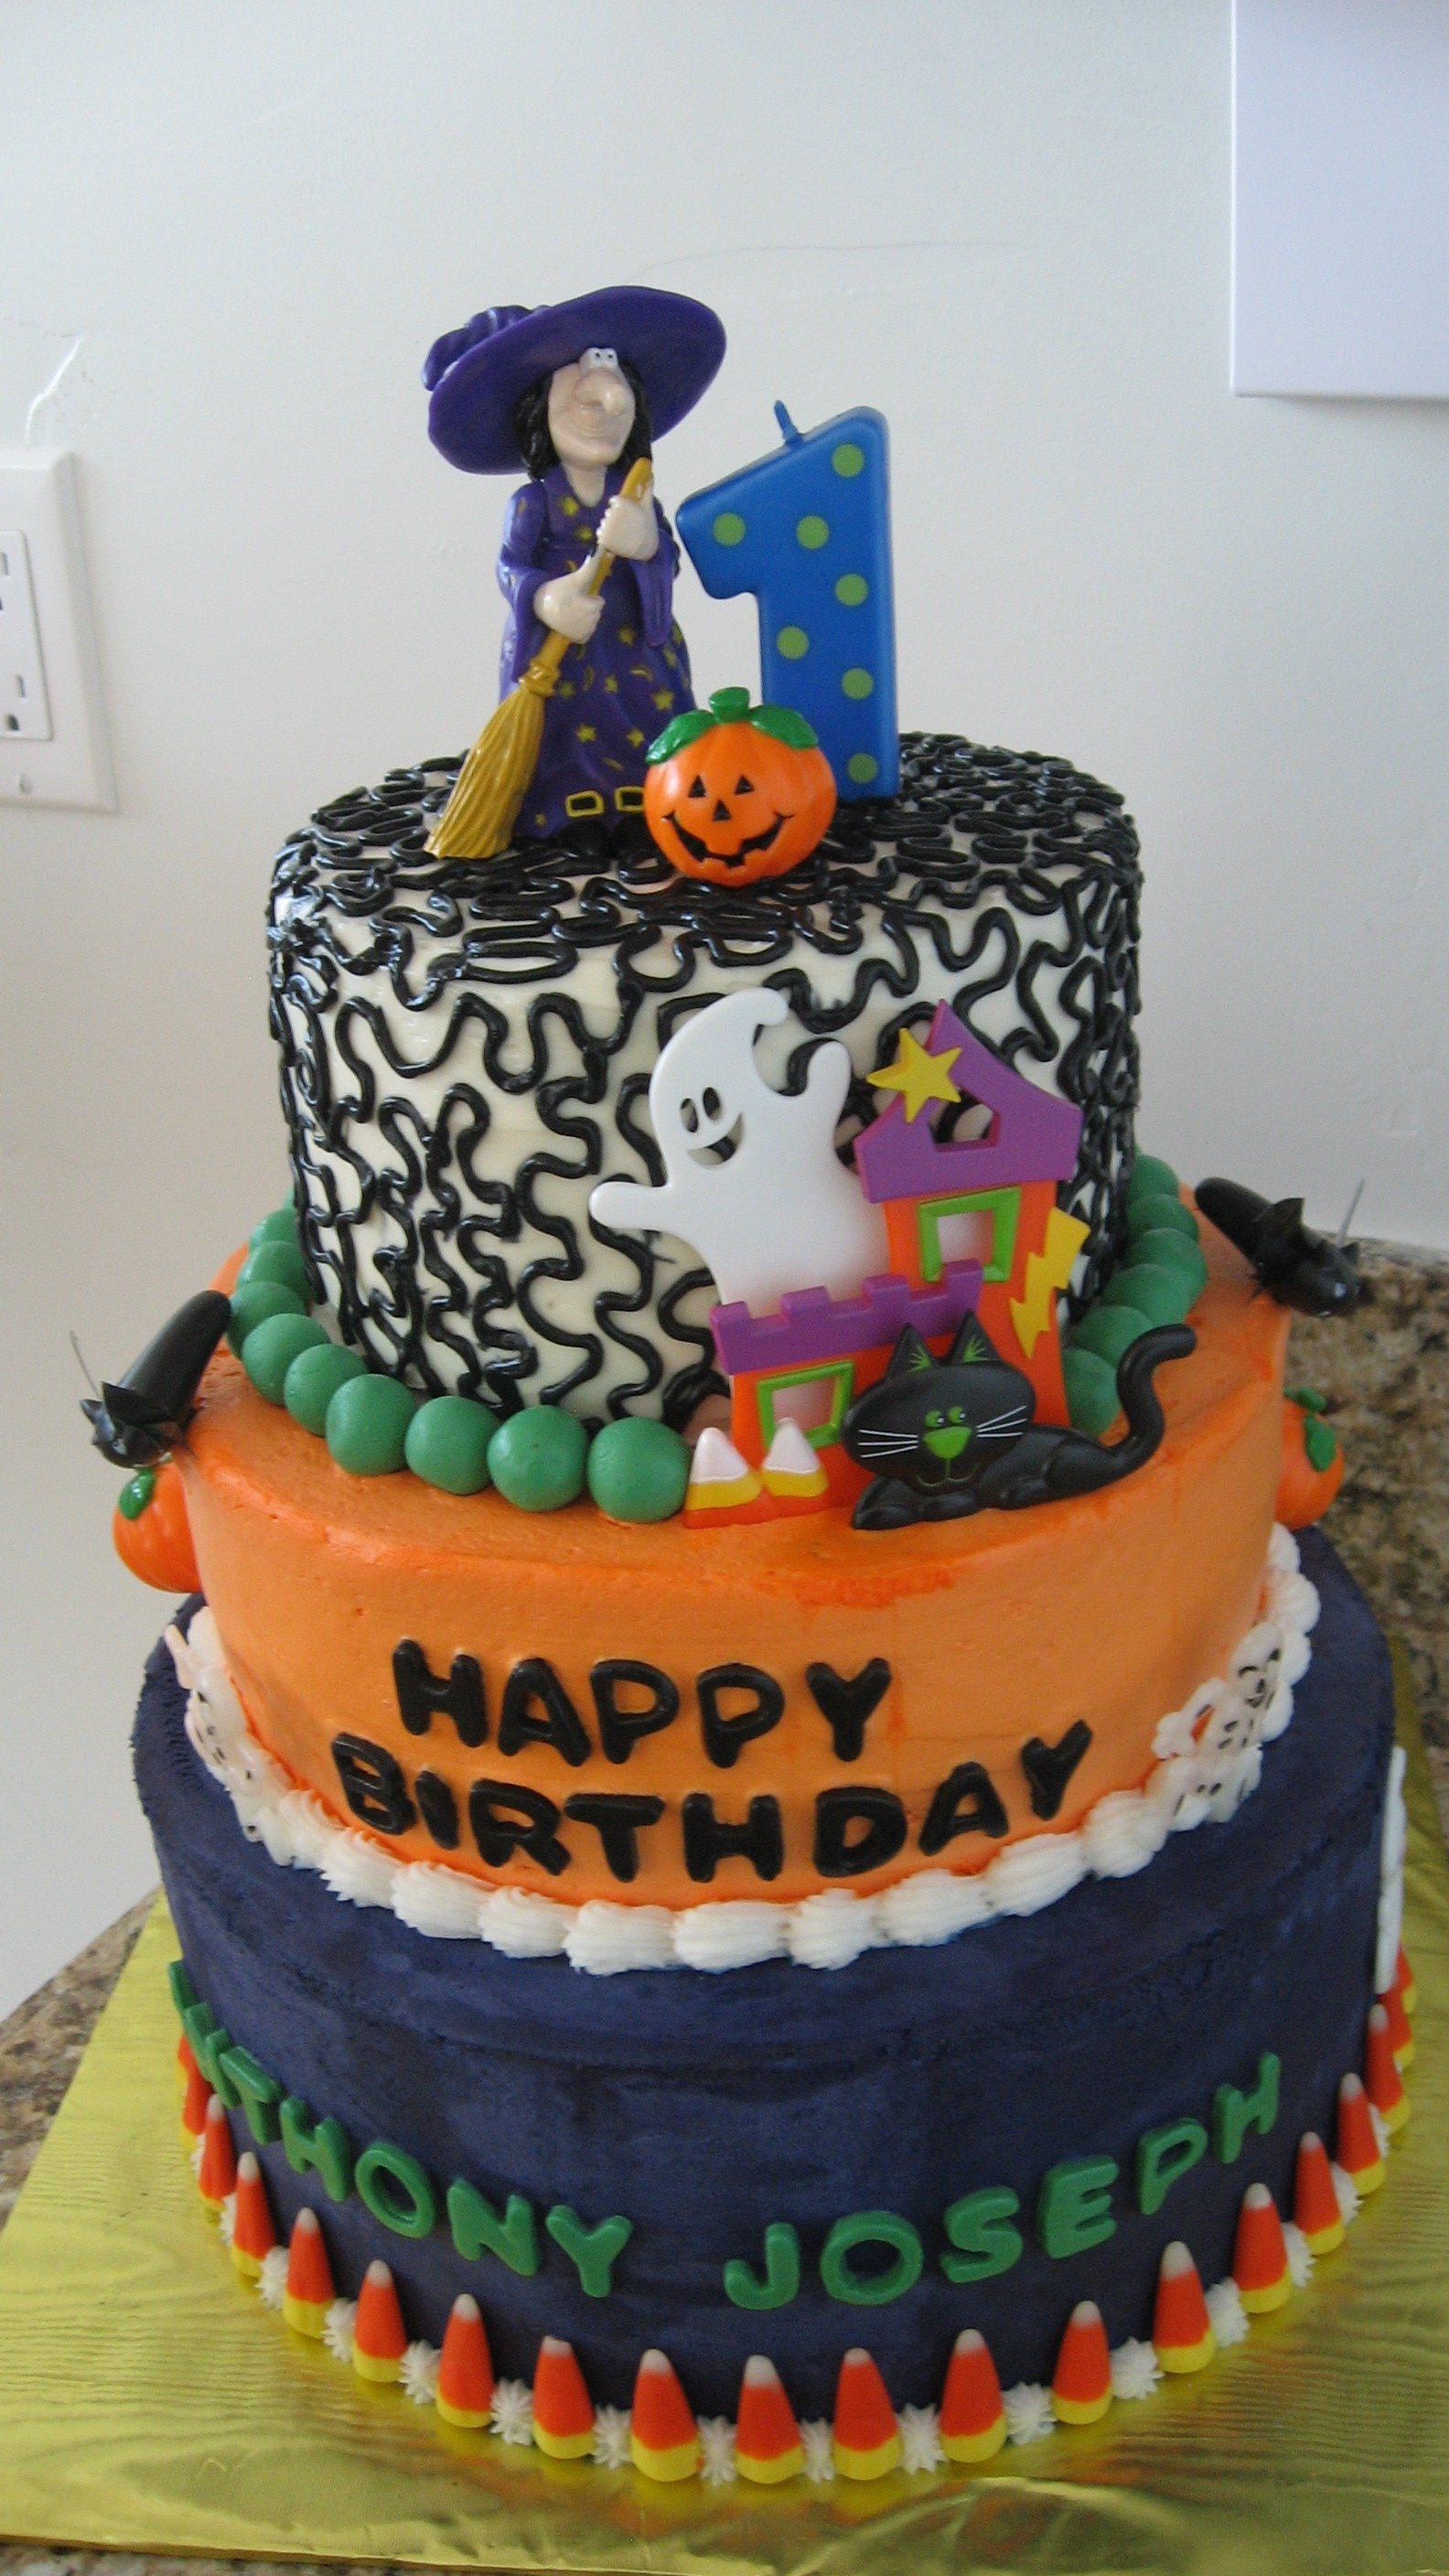 10 Elegant Halloween Cake Ideas For Kids 20 best ever halloween cakes page 5 of 30 2020